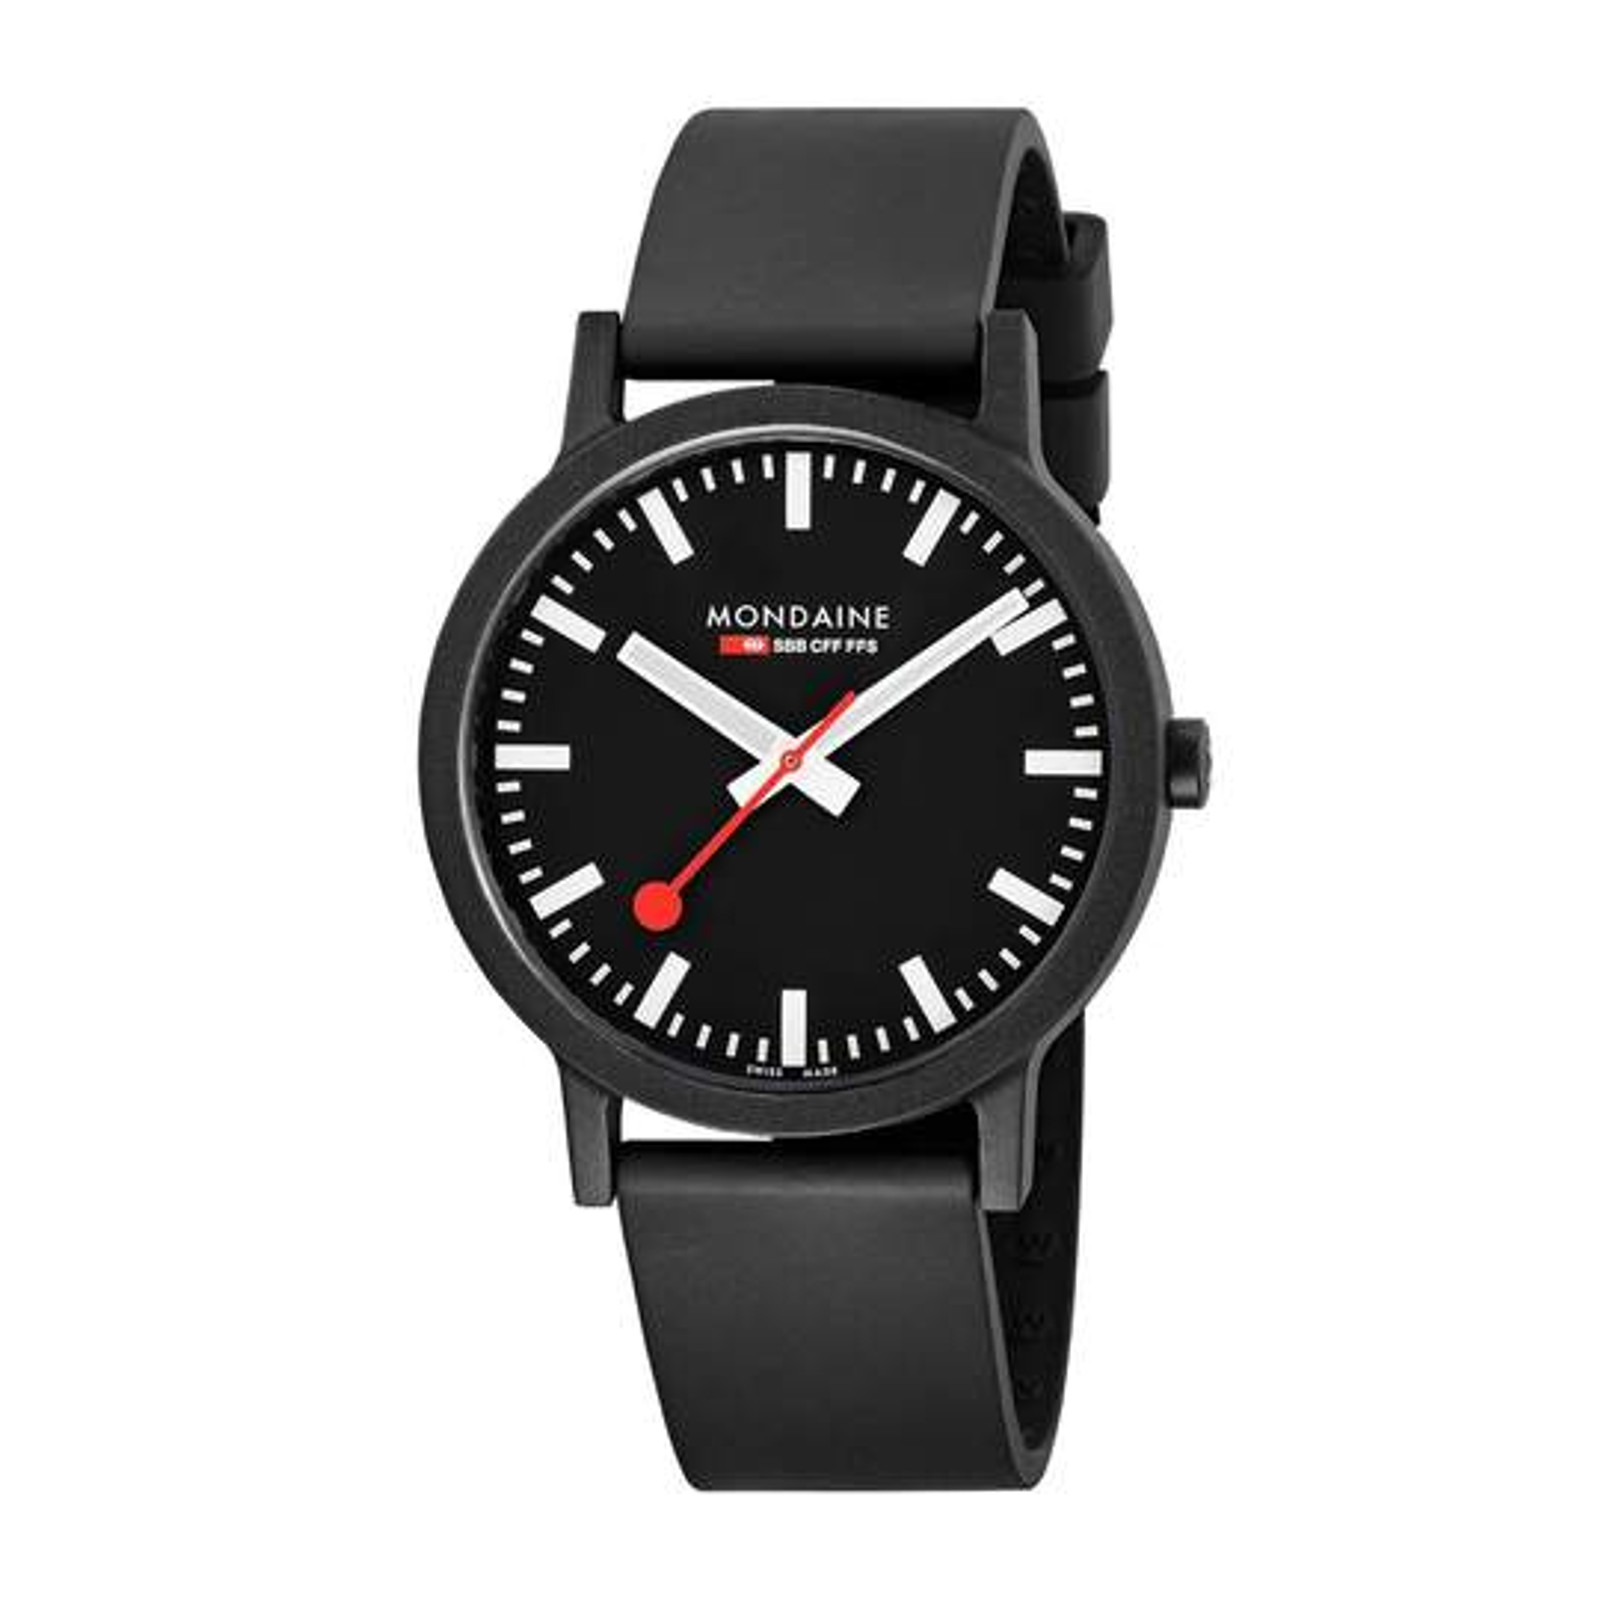 Essence 41mm - Black dial